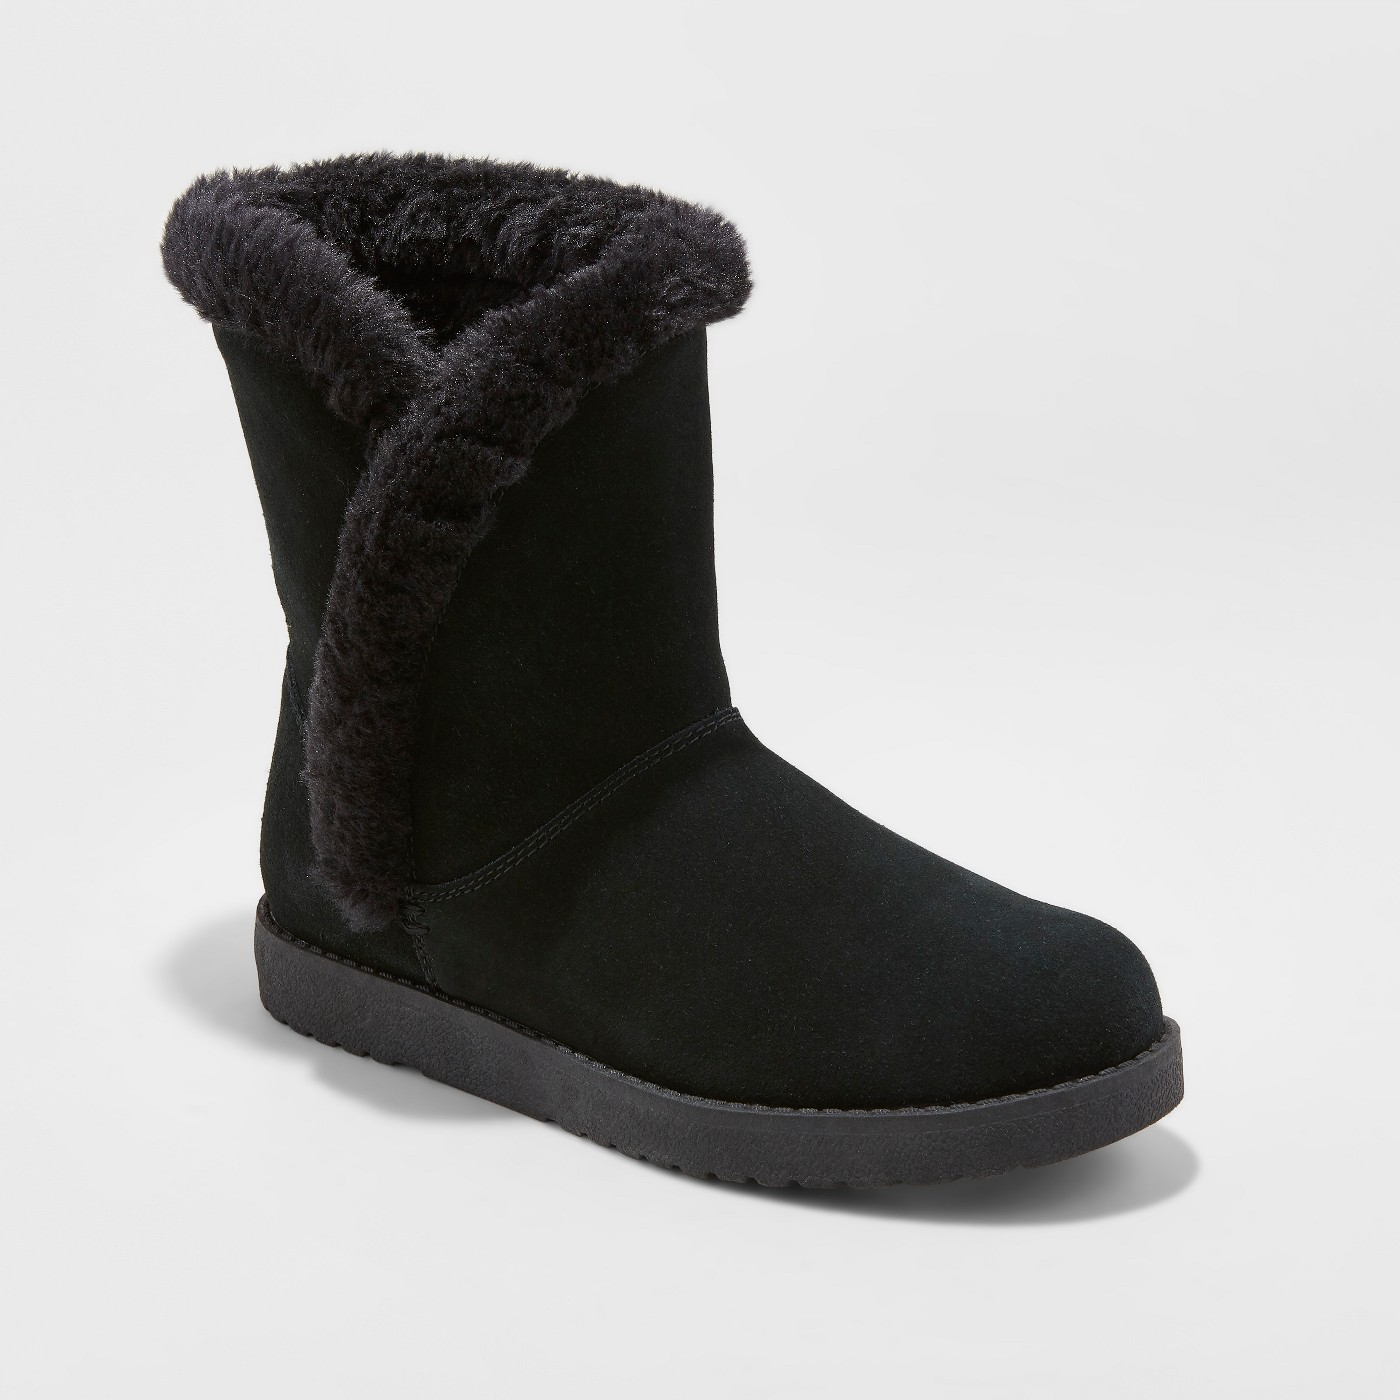 Women's Daniah Suede Winter Boots - Universal Thread